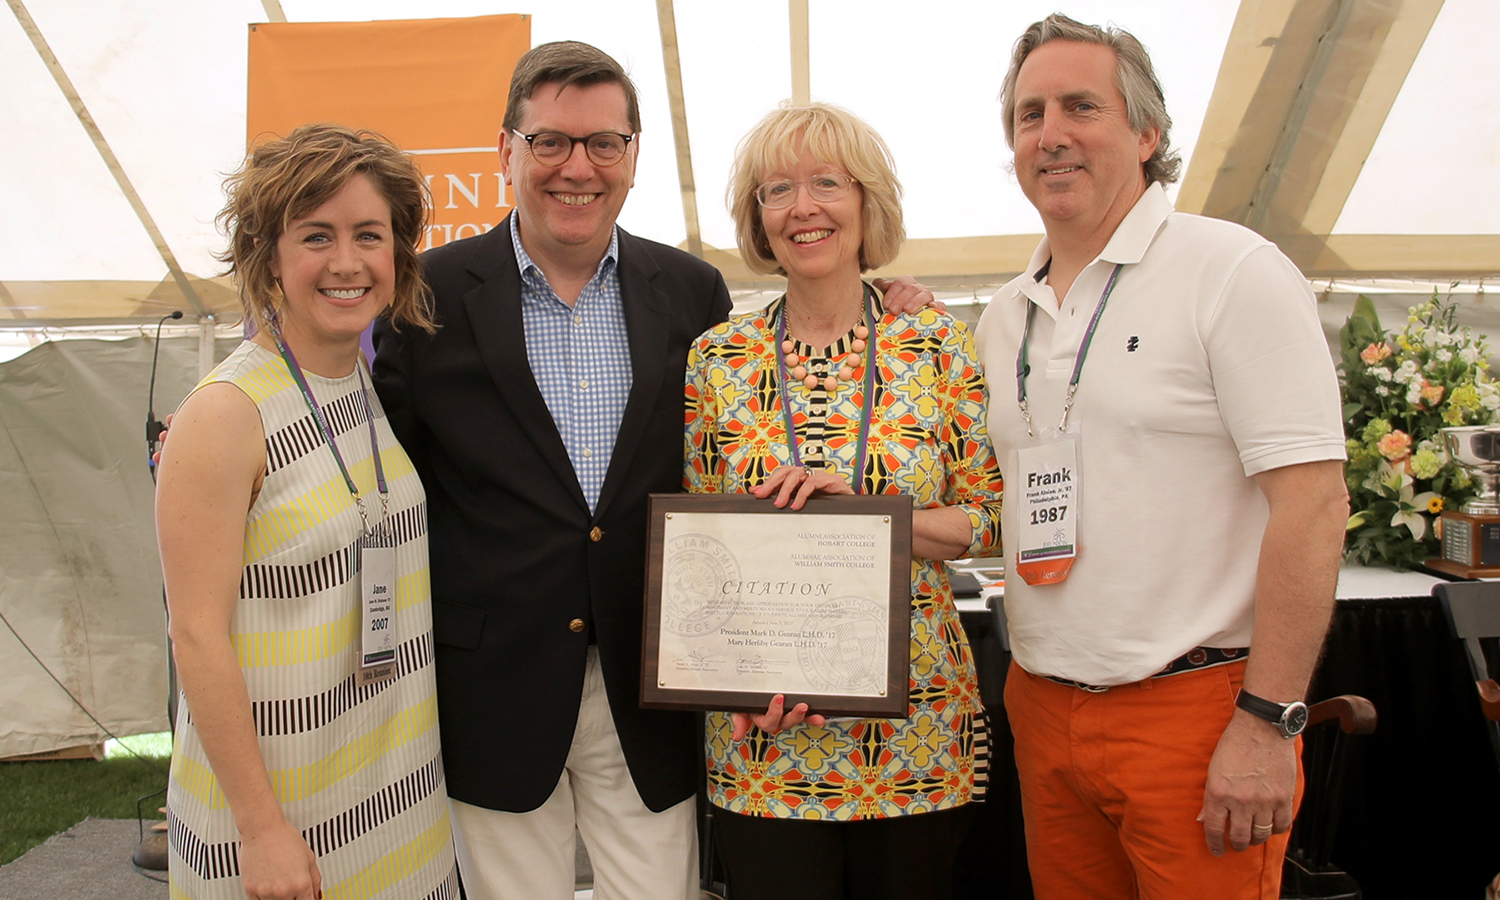 President Mark D. Gearan L.H.D. '17 and Mary Herlihy Gearan L.H.D. '17 are presented the Alumni and Alumnae association citation for service by Jane Erickson '07 and Frank Aloise Jr. '87.  The citation is awarded for generous service to generations of students and alums.